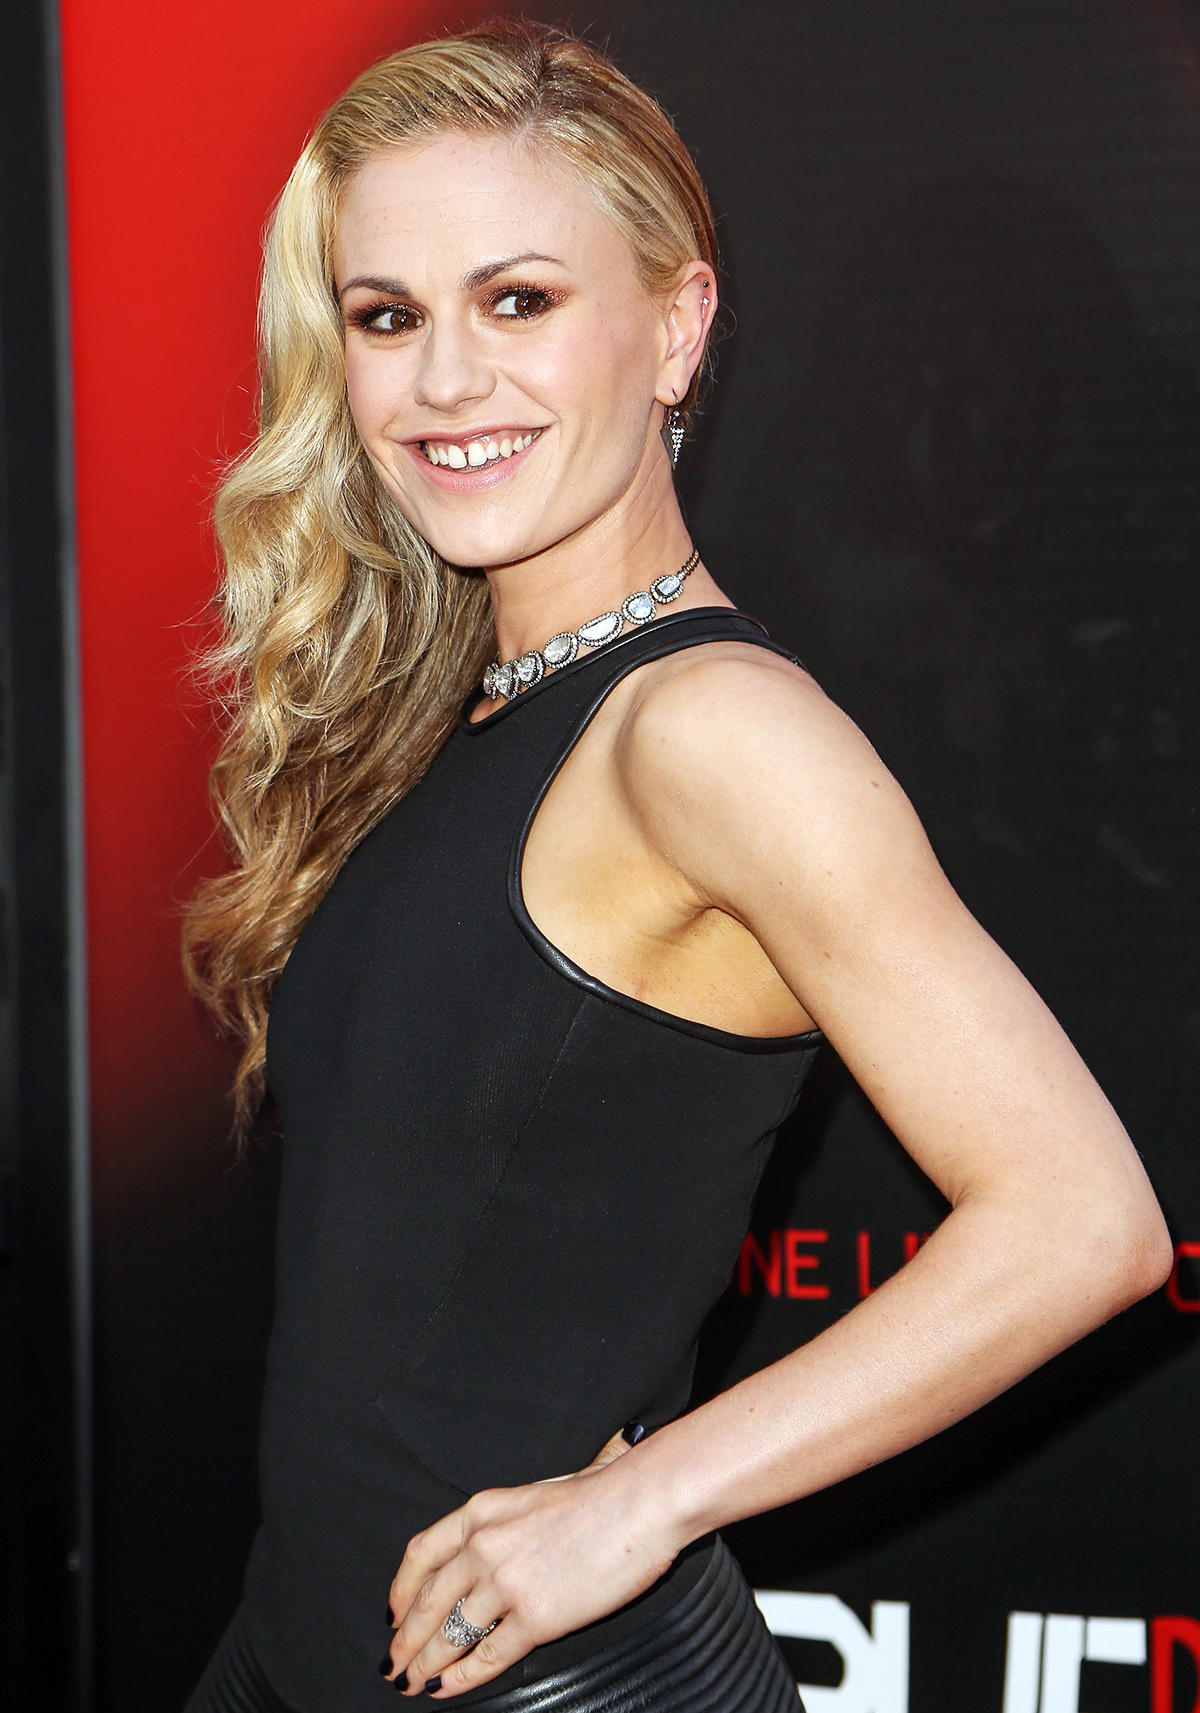 35 Hottest Pictures Of Anna Paquin Who Plays Rogue In X ... Anna Paquin